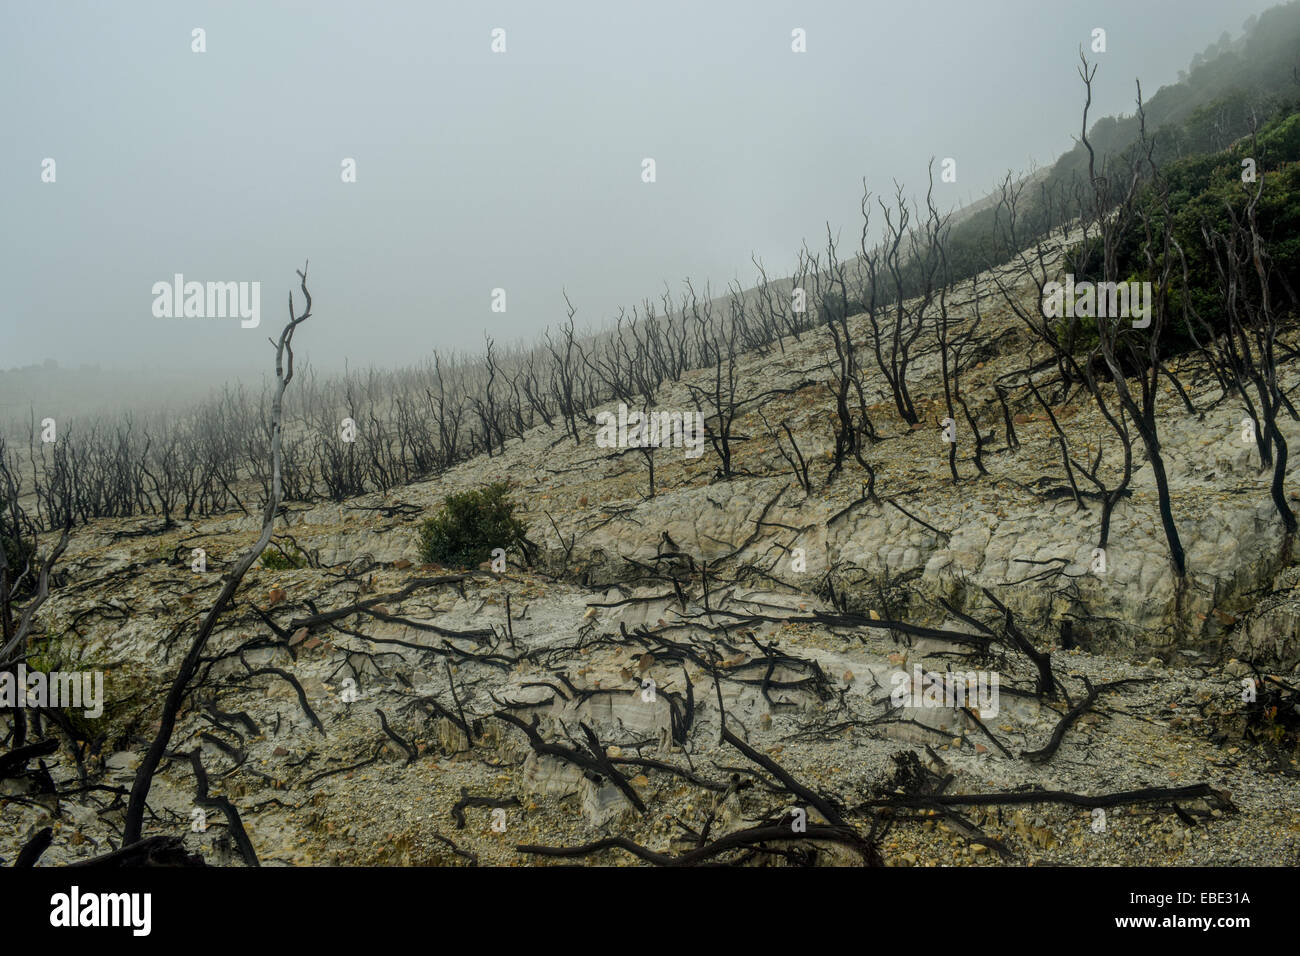 Dead trees near the crater of Mount Papandayan, Indonesia. - Stock Image